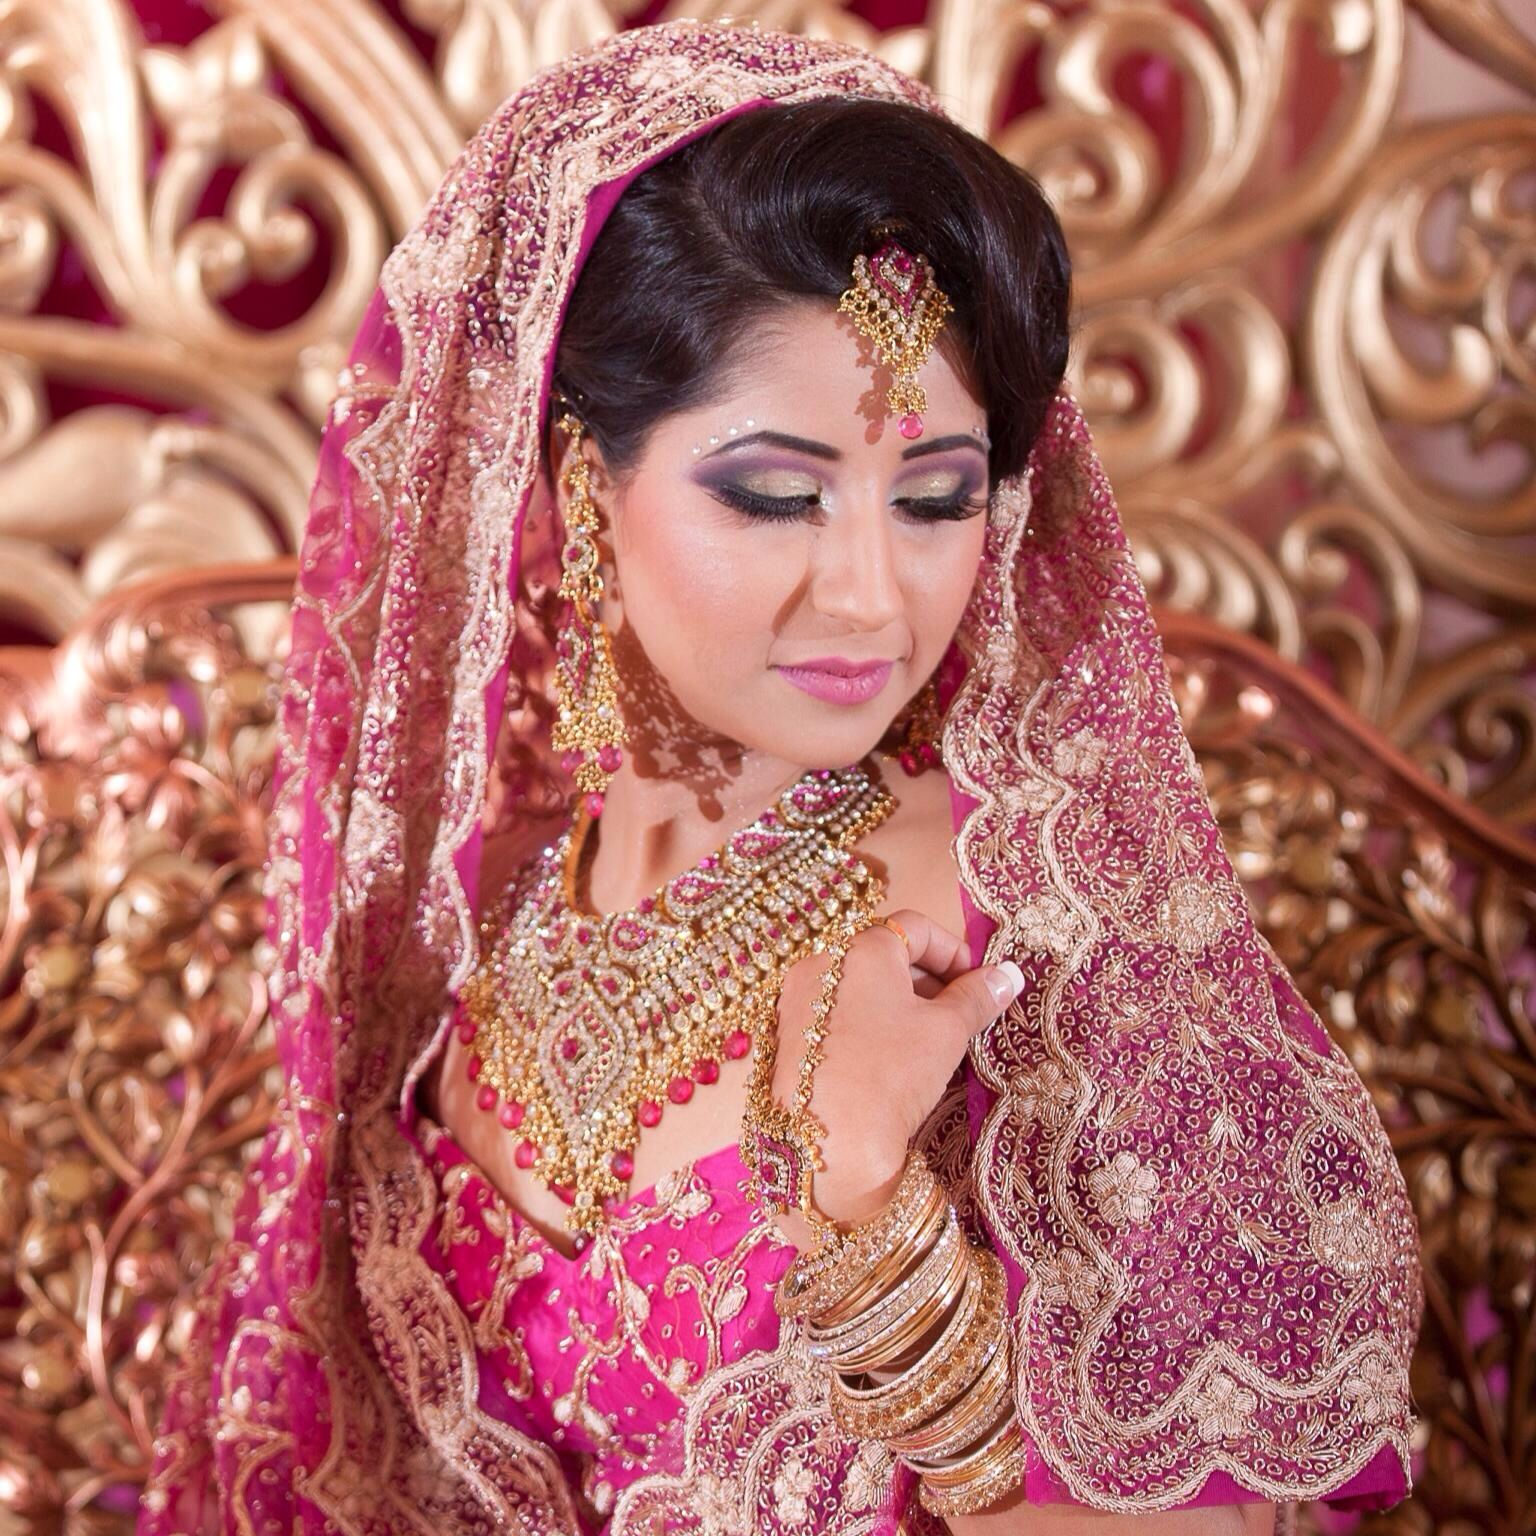 Bollywood Classic Indian Bride- henna night | South Asian Events ...